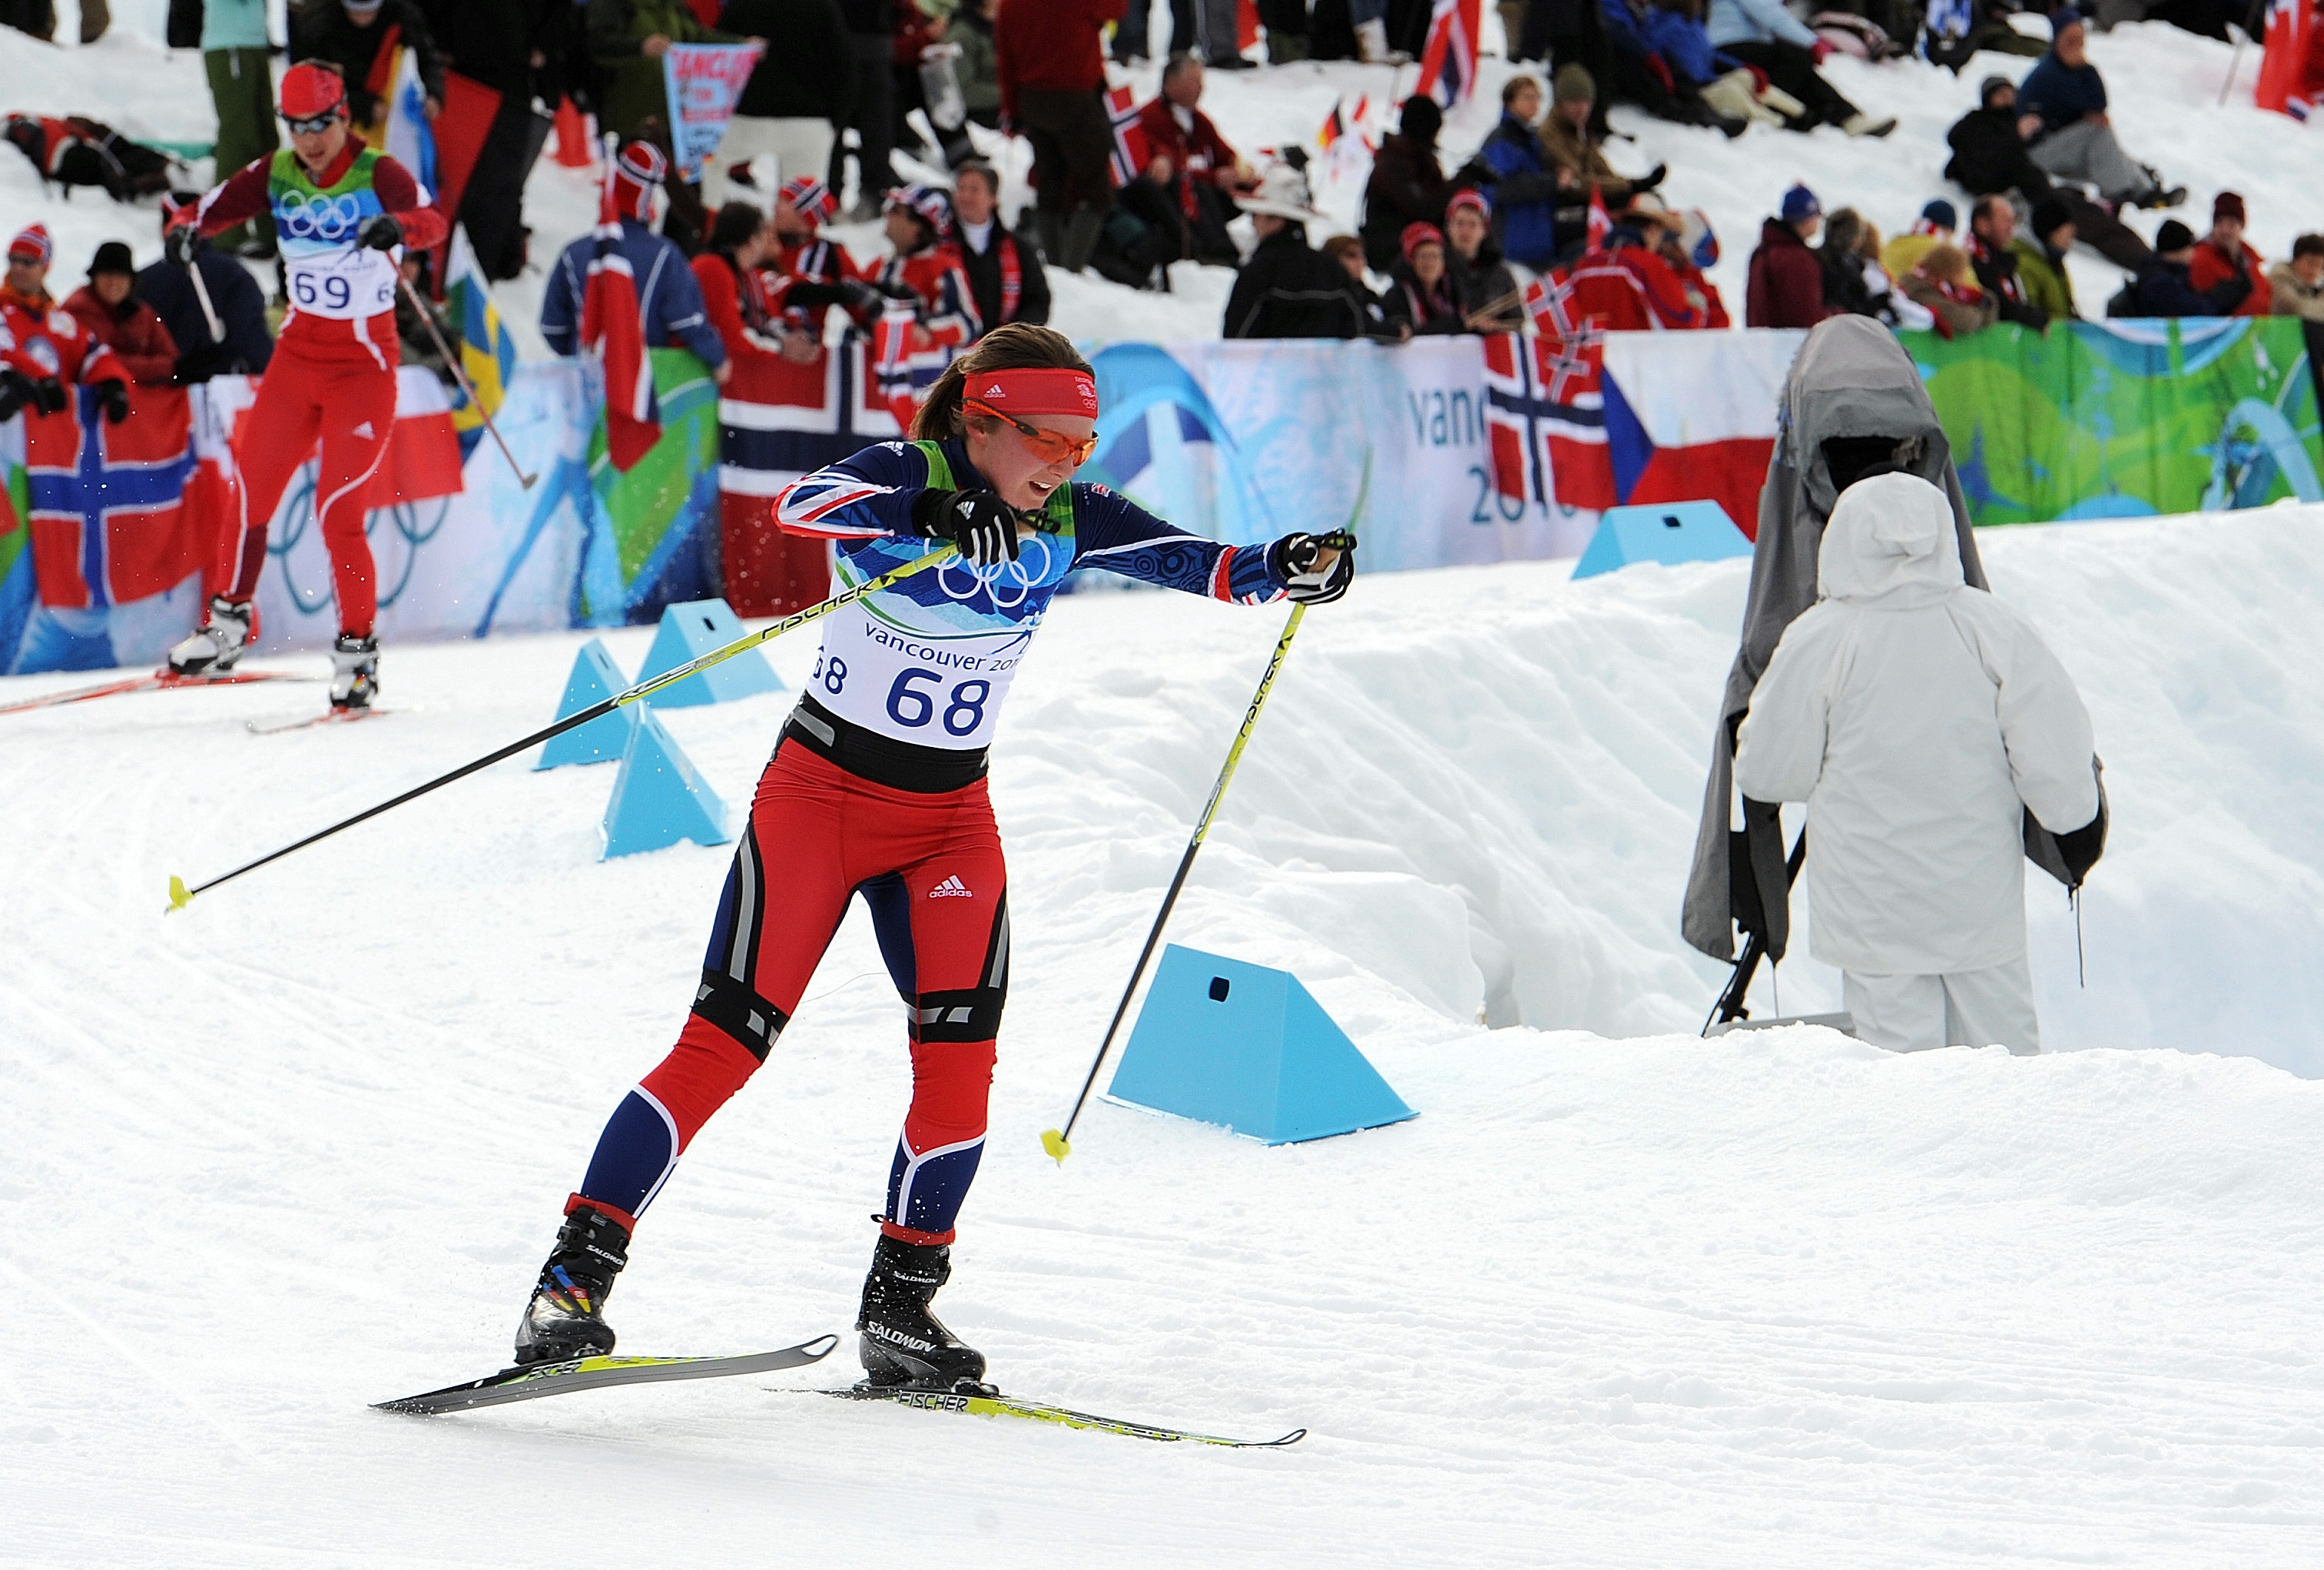 Fiona competing in the 10km cross-country skiing race at the Winter Olympics in 2010